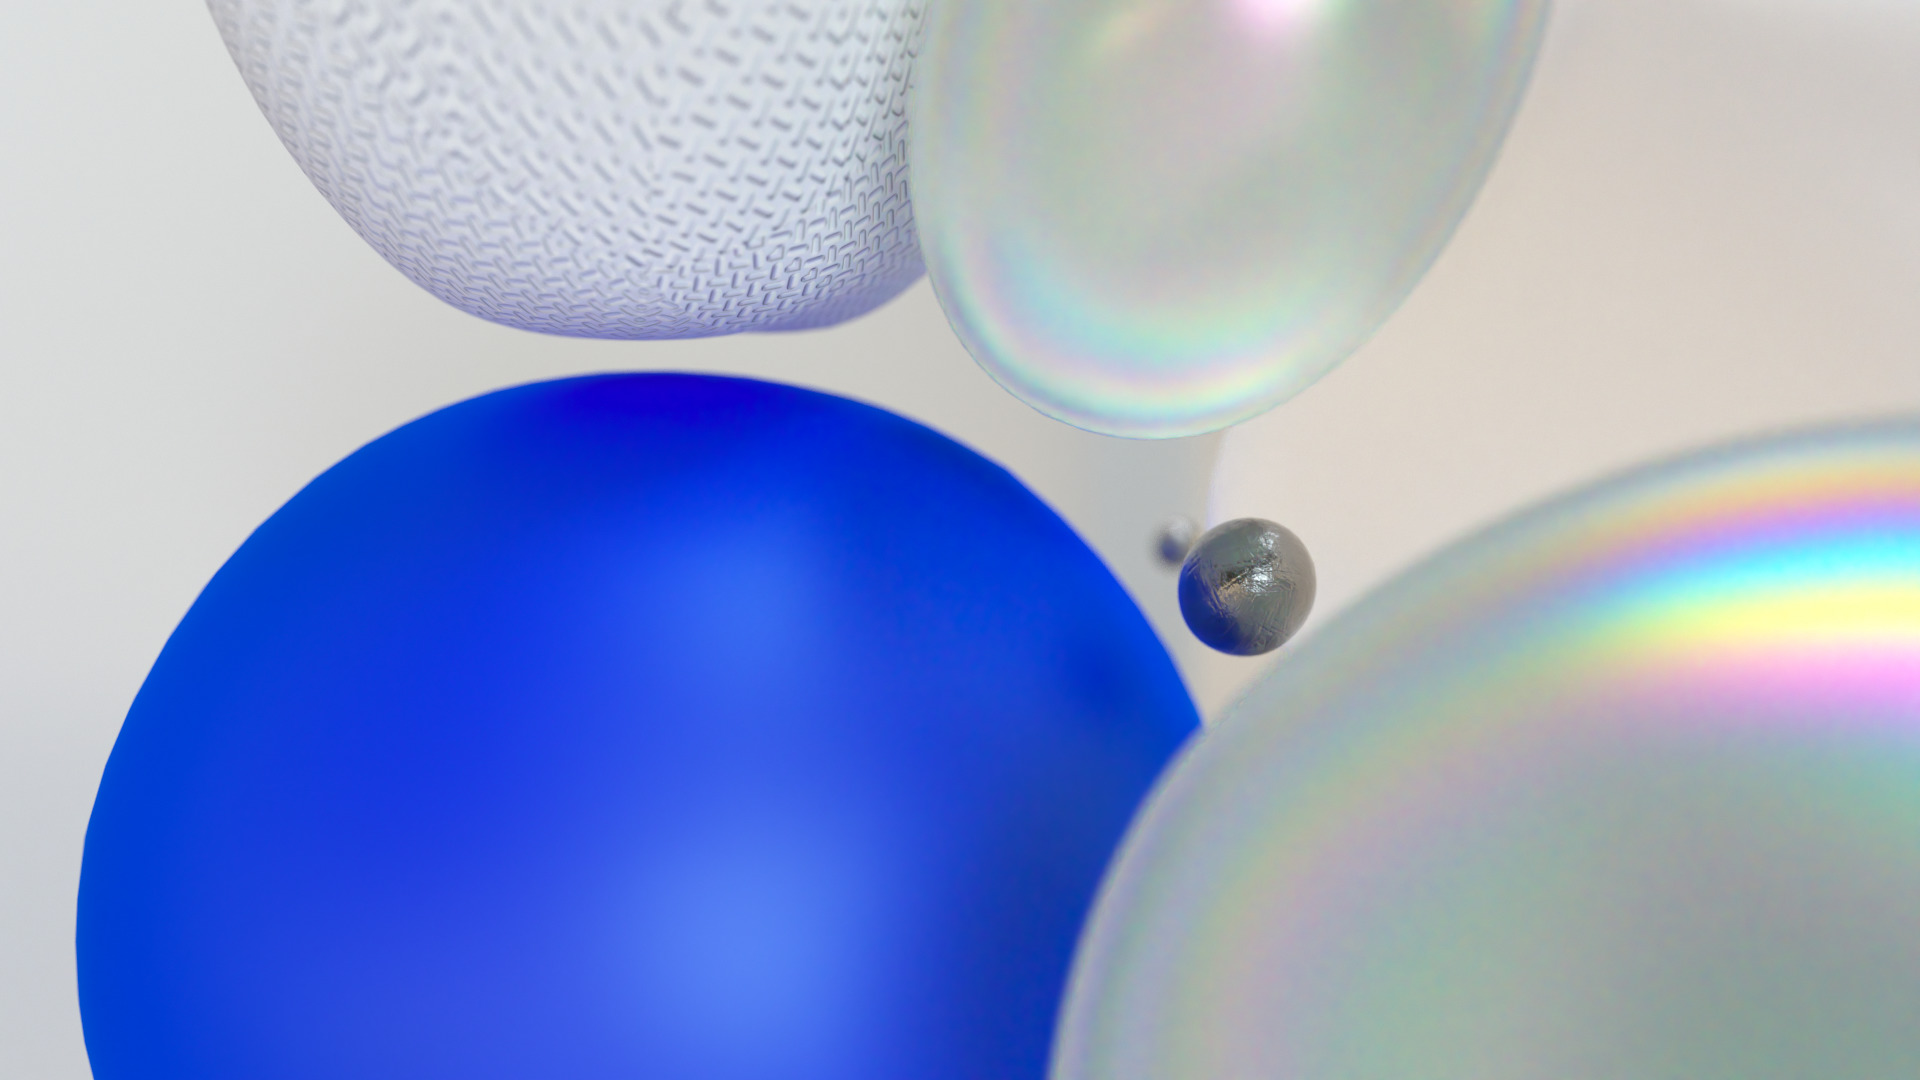 Blue, reflective, white Bubbles and Balls 01